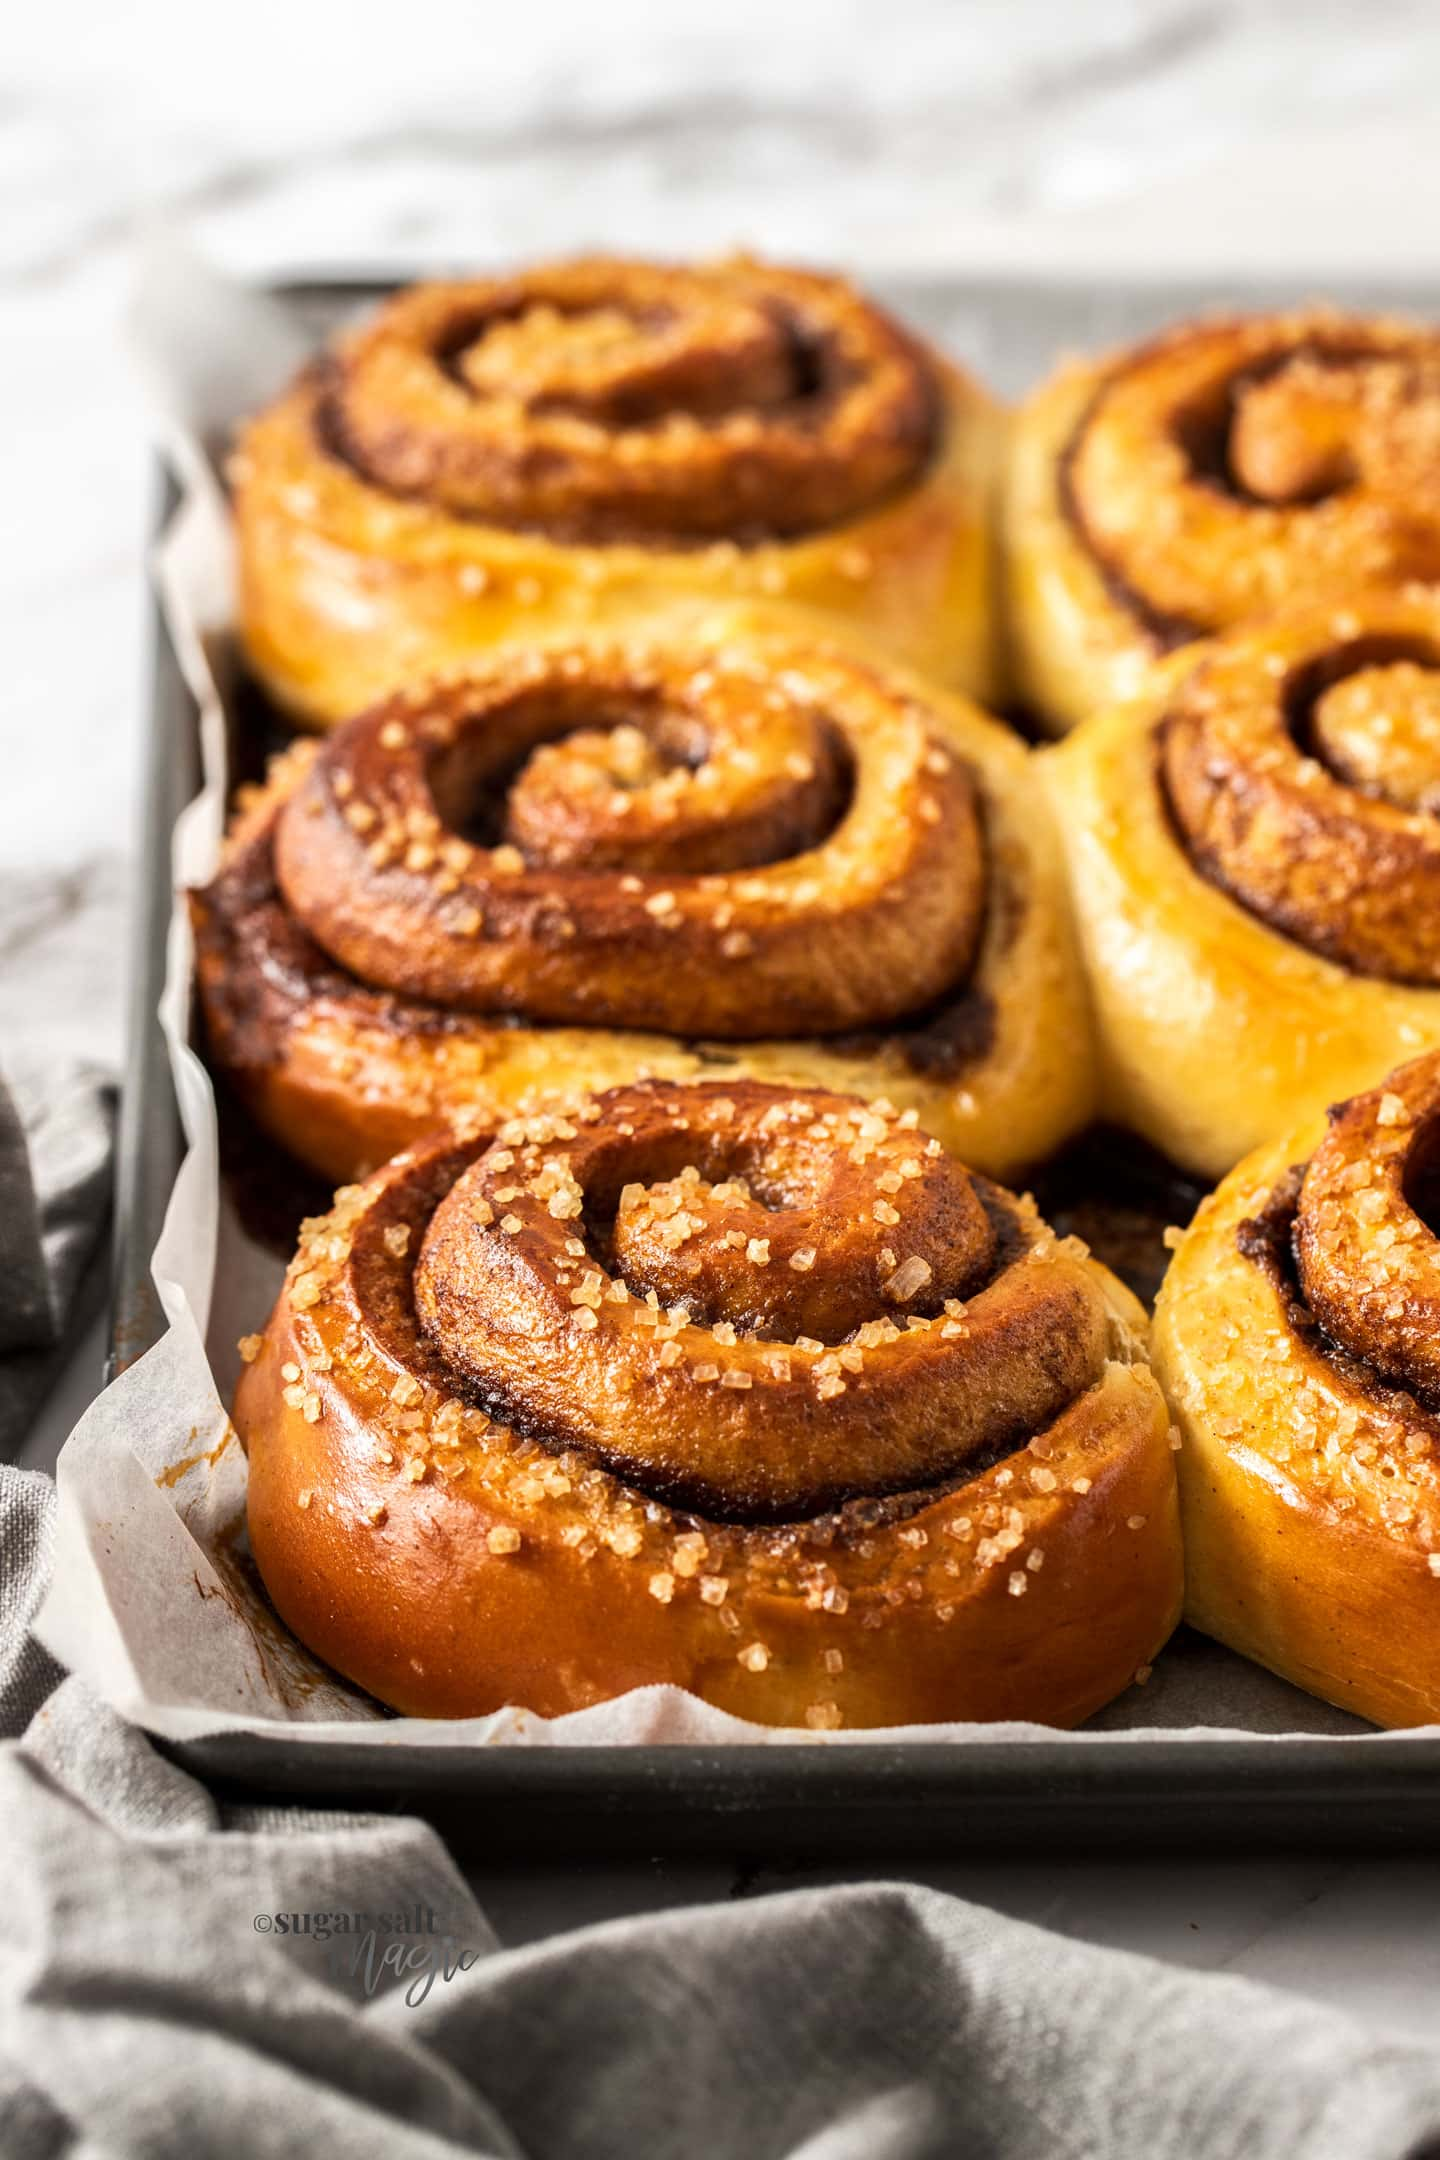 A row of 3 cinnamon buns on a baking tray.